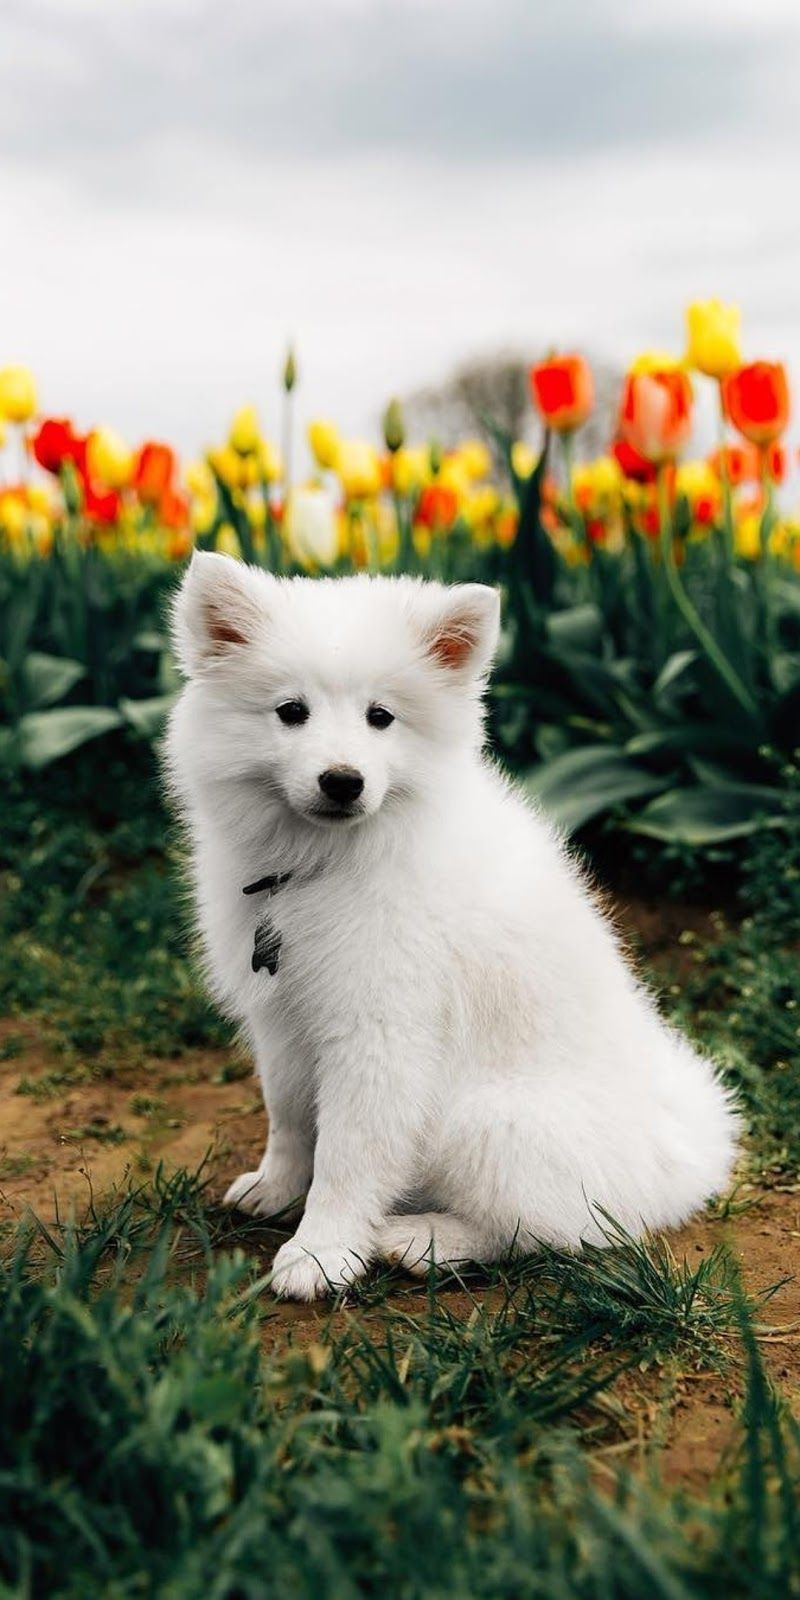 Cute Puppy Wallpaper Download At Http Www Myfavwallpaper Com 2018 08 Cute Puppy Wallpaper Html Iphon Cute Puppy Wallpaper Puppy Backgrounds Puppy Wallpaper